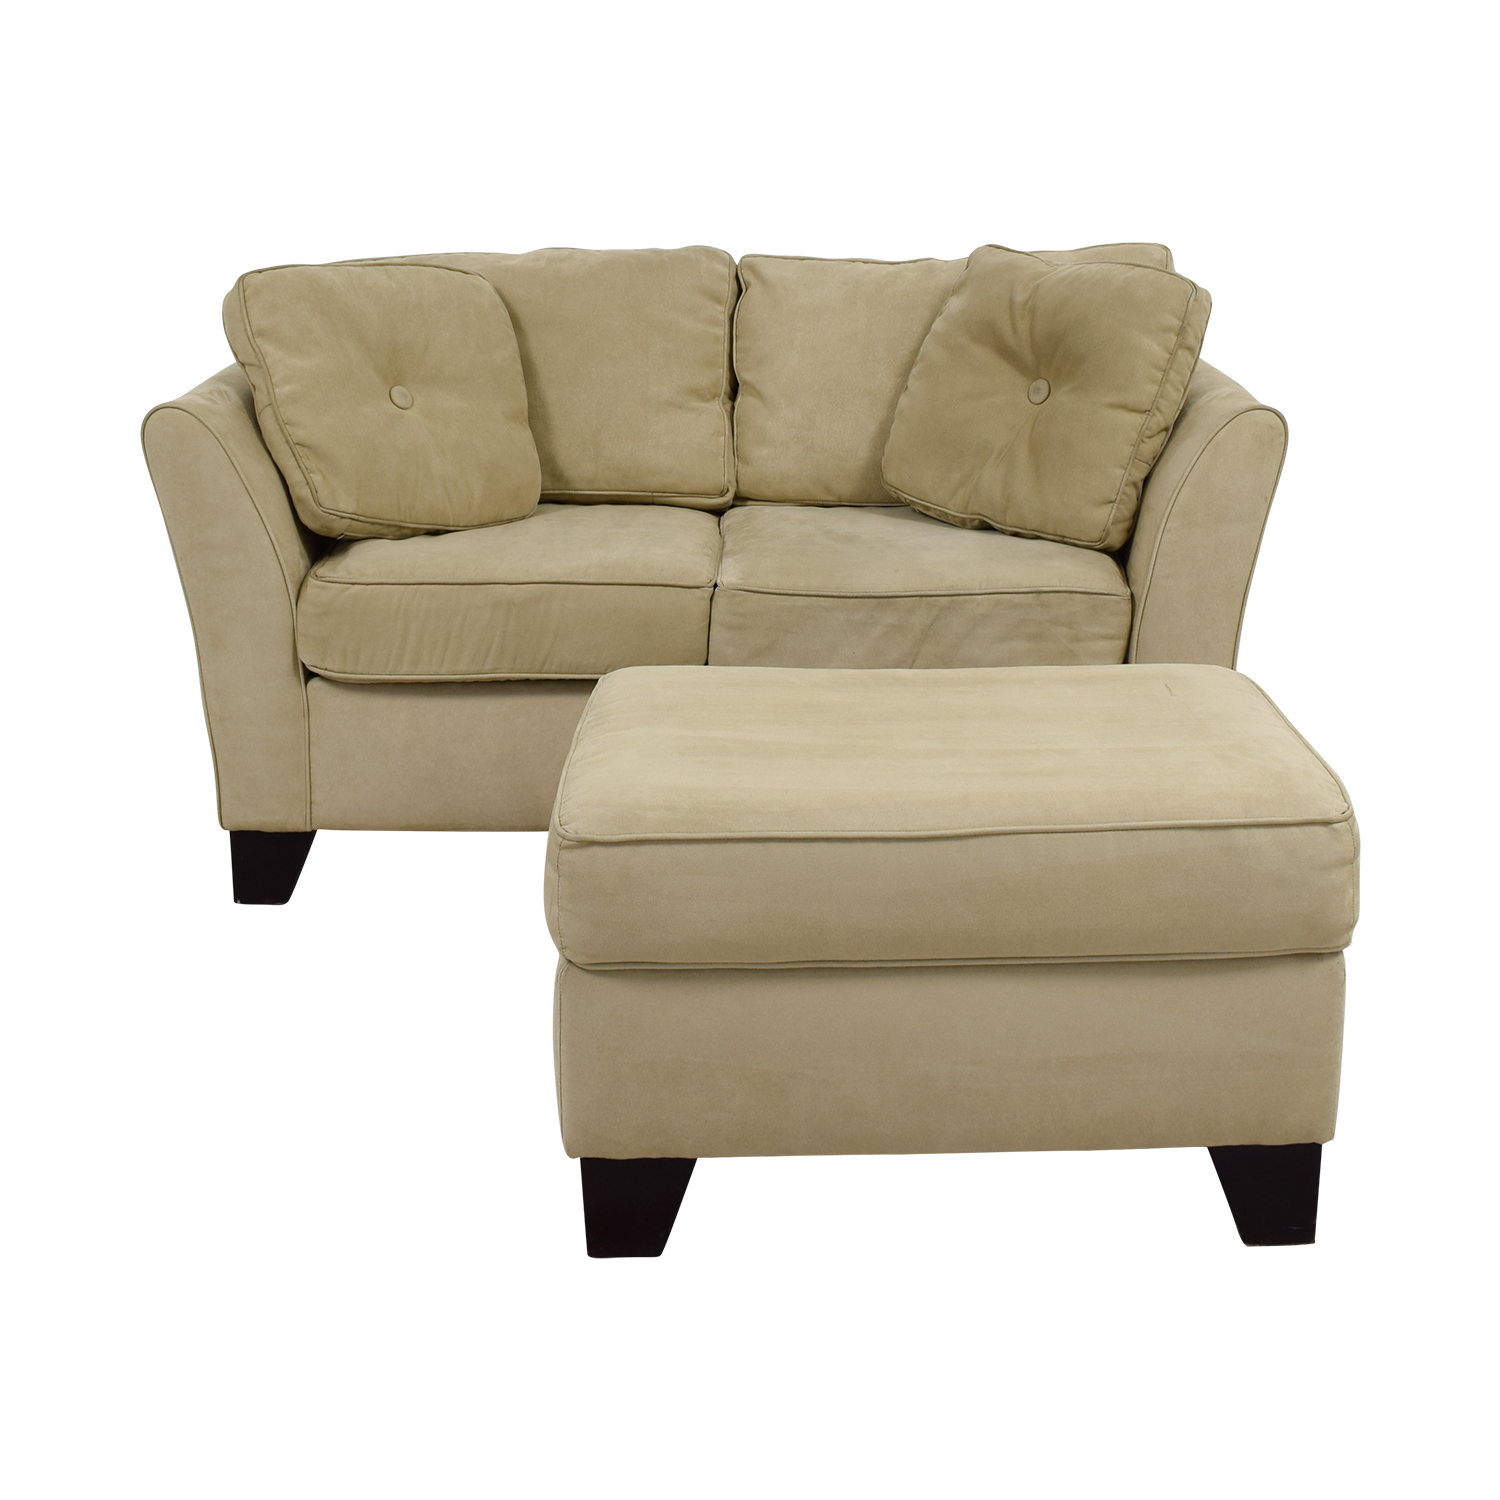 room living loveseats rcwilley fabric casual view tan willey furniture store traditional jsp rc adair loveseat